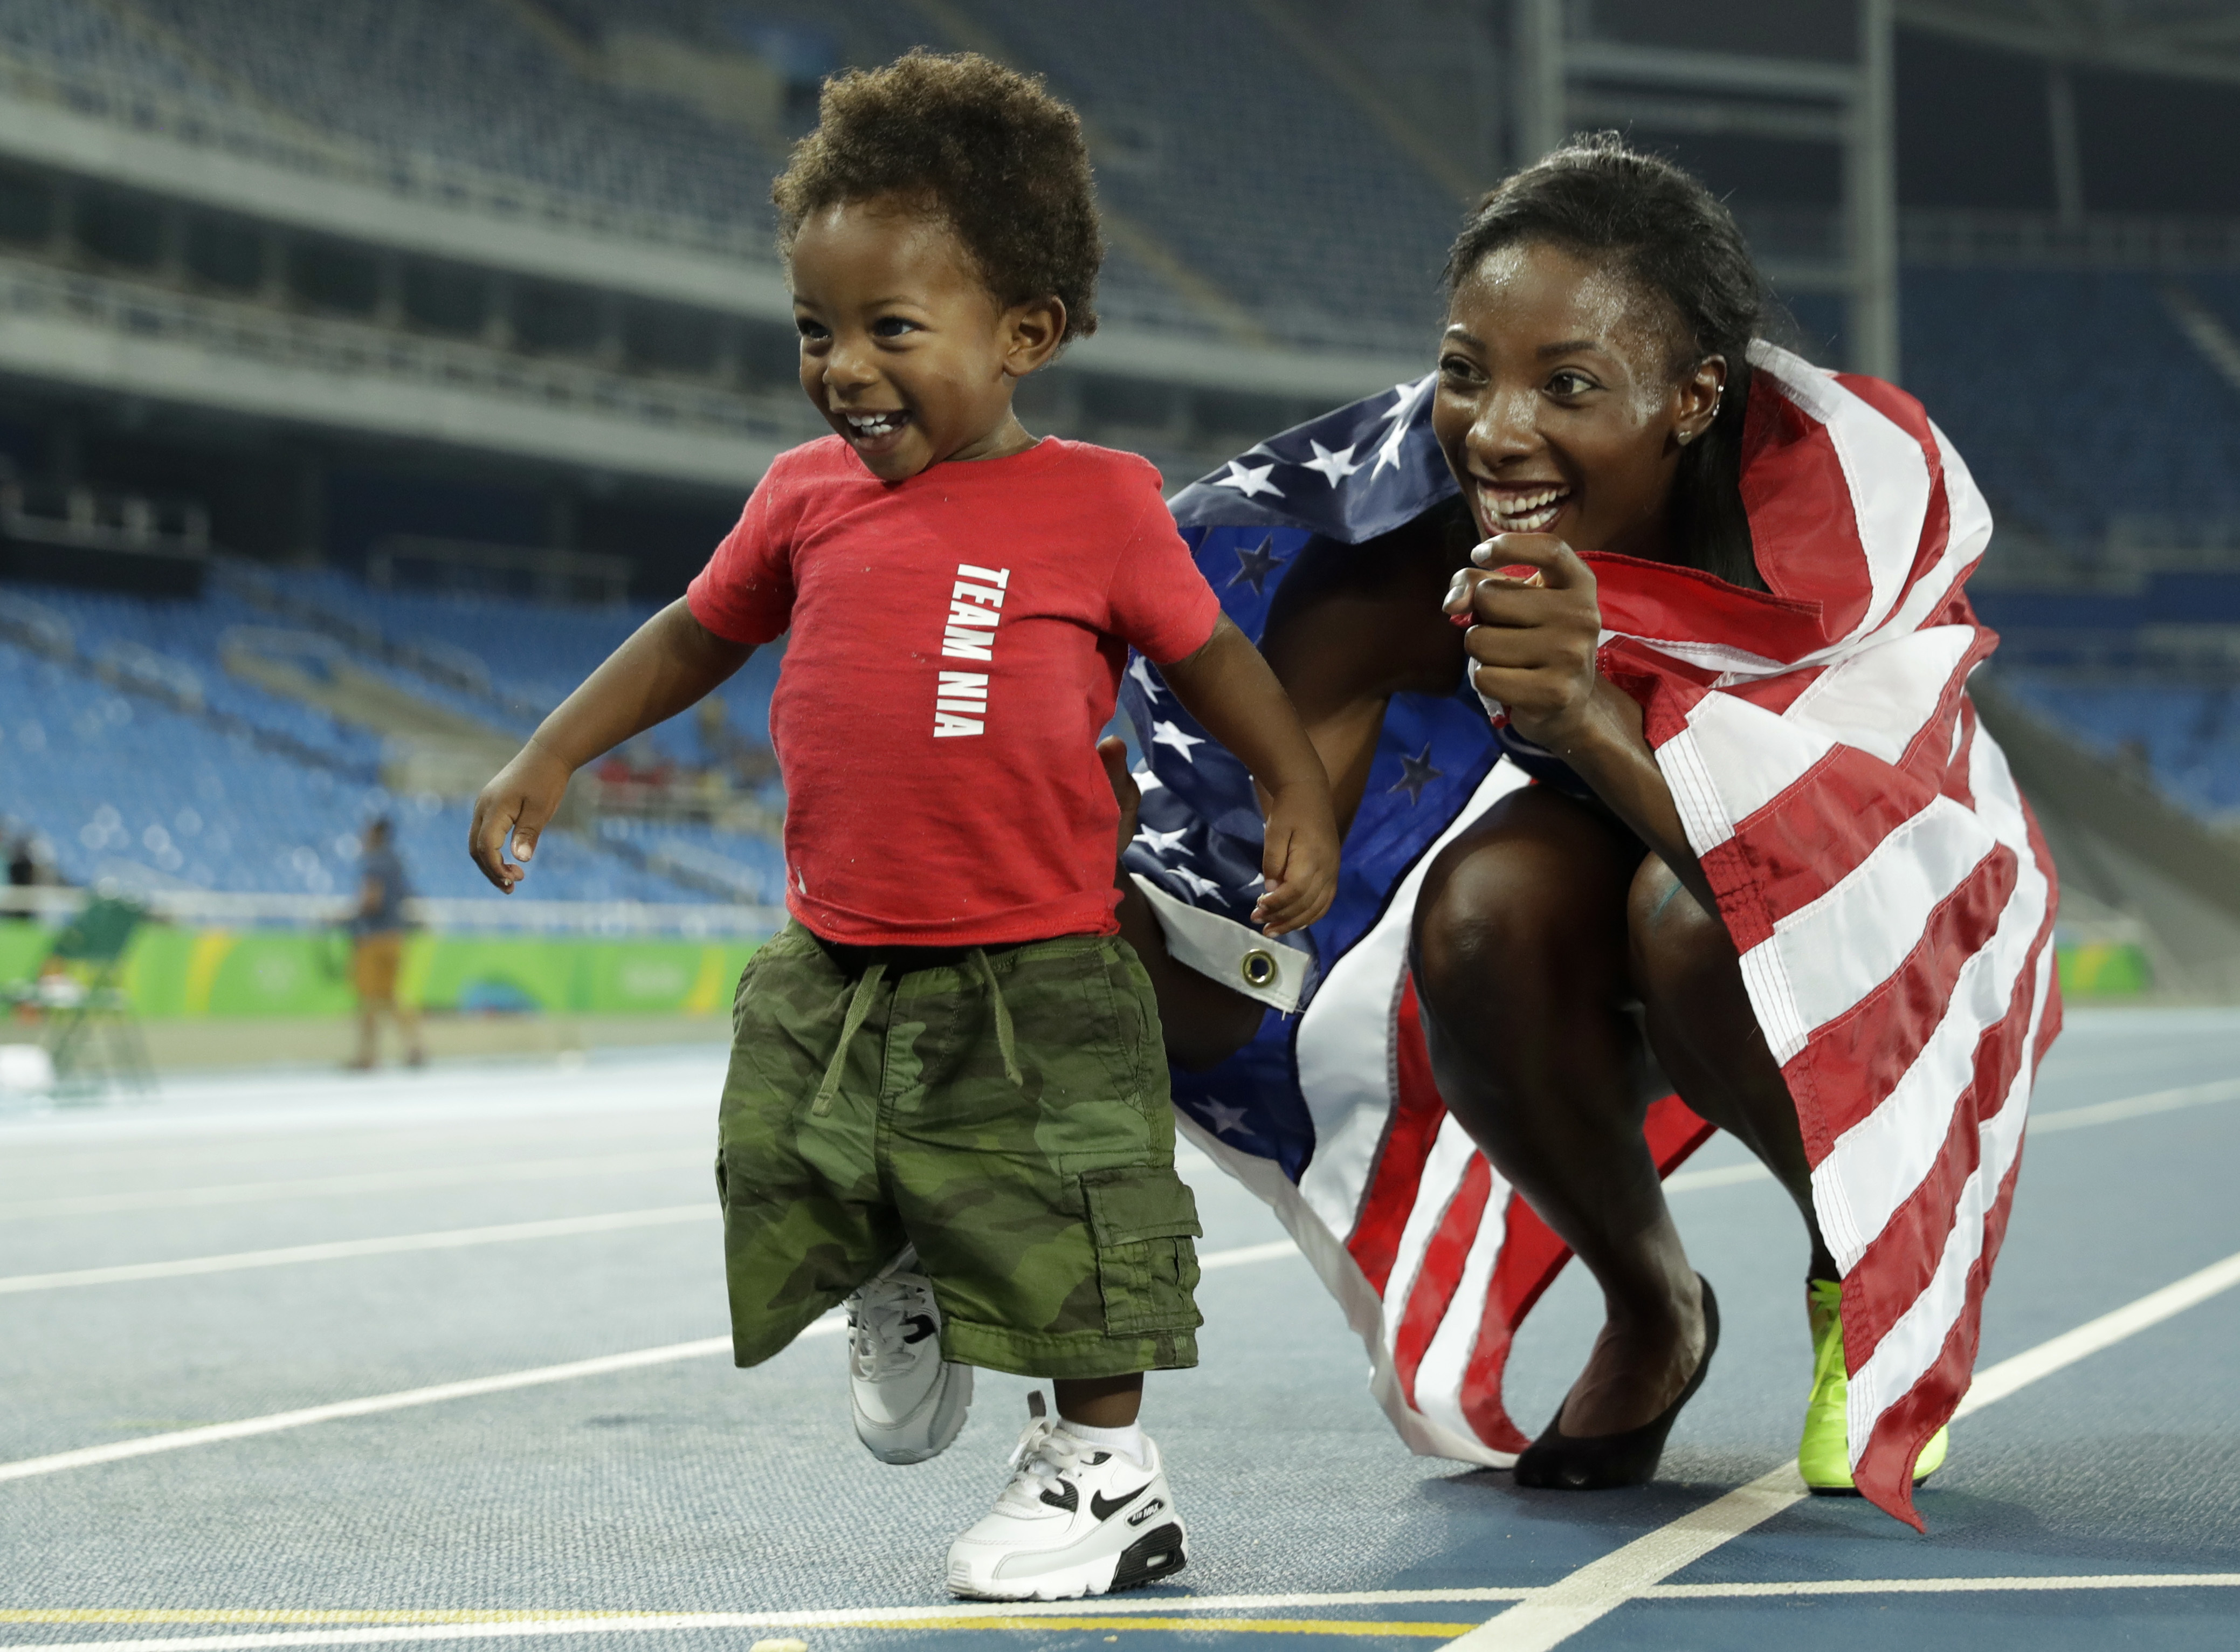 Nia Ali of the United States poses with her son, Titus, after earning the silver medal at the women's 100-meter hurdles event on Wednesday at the 2016 Rio de Janeiro Olympics. | AP